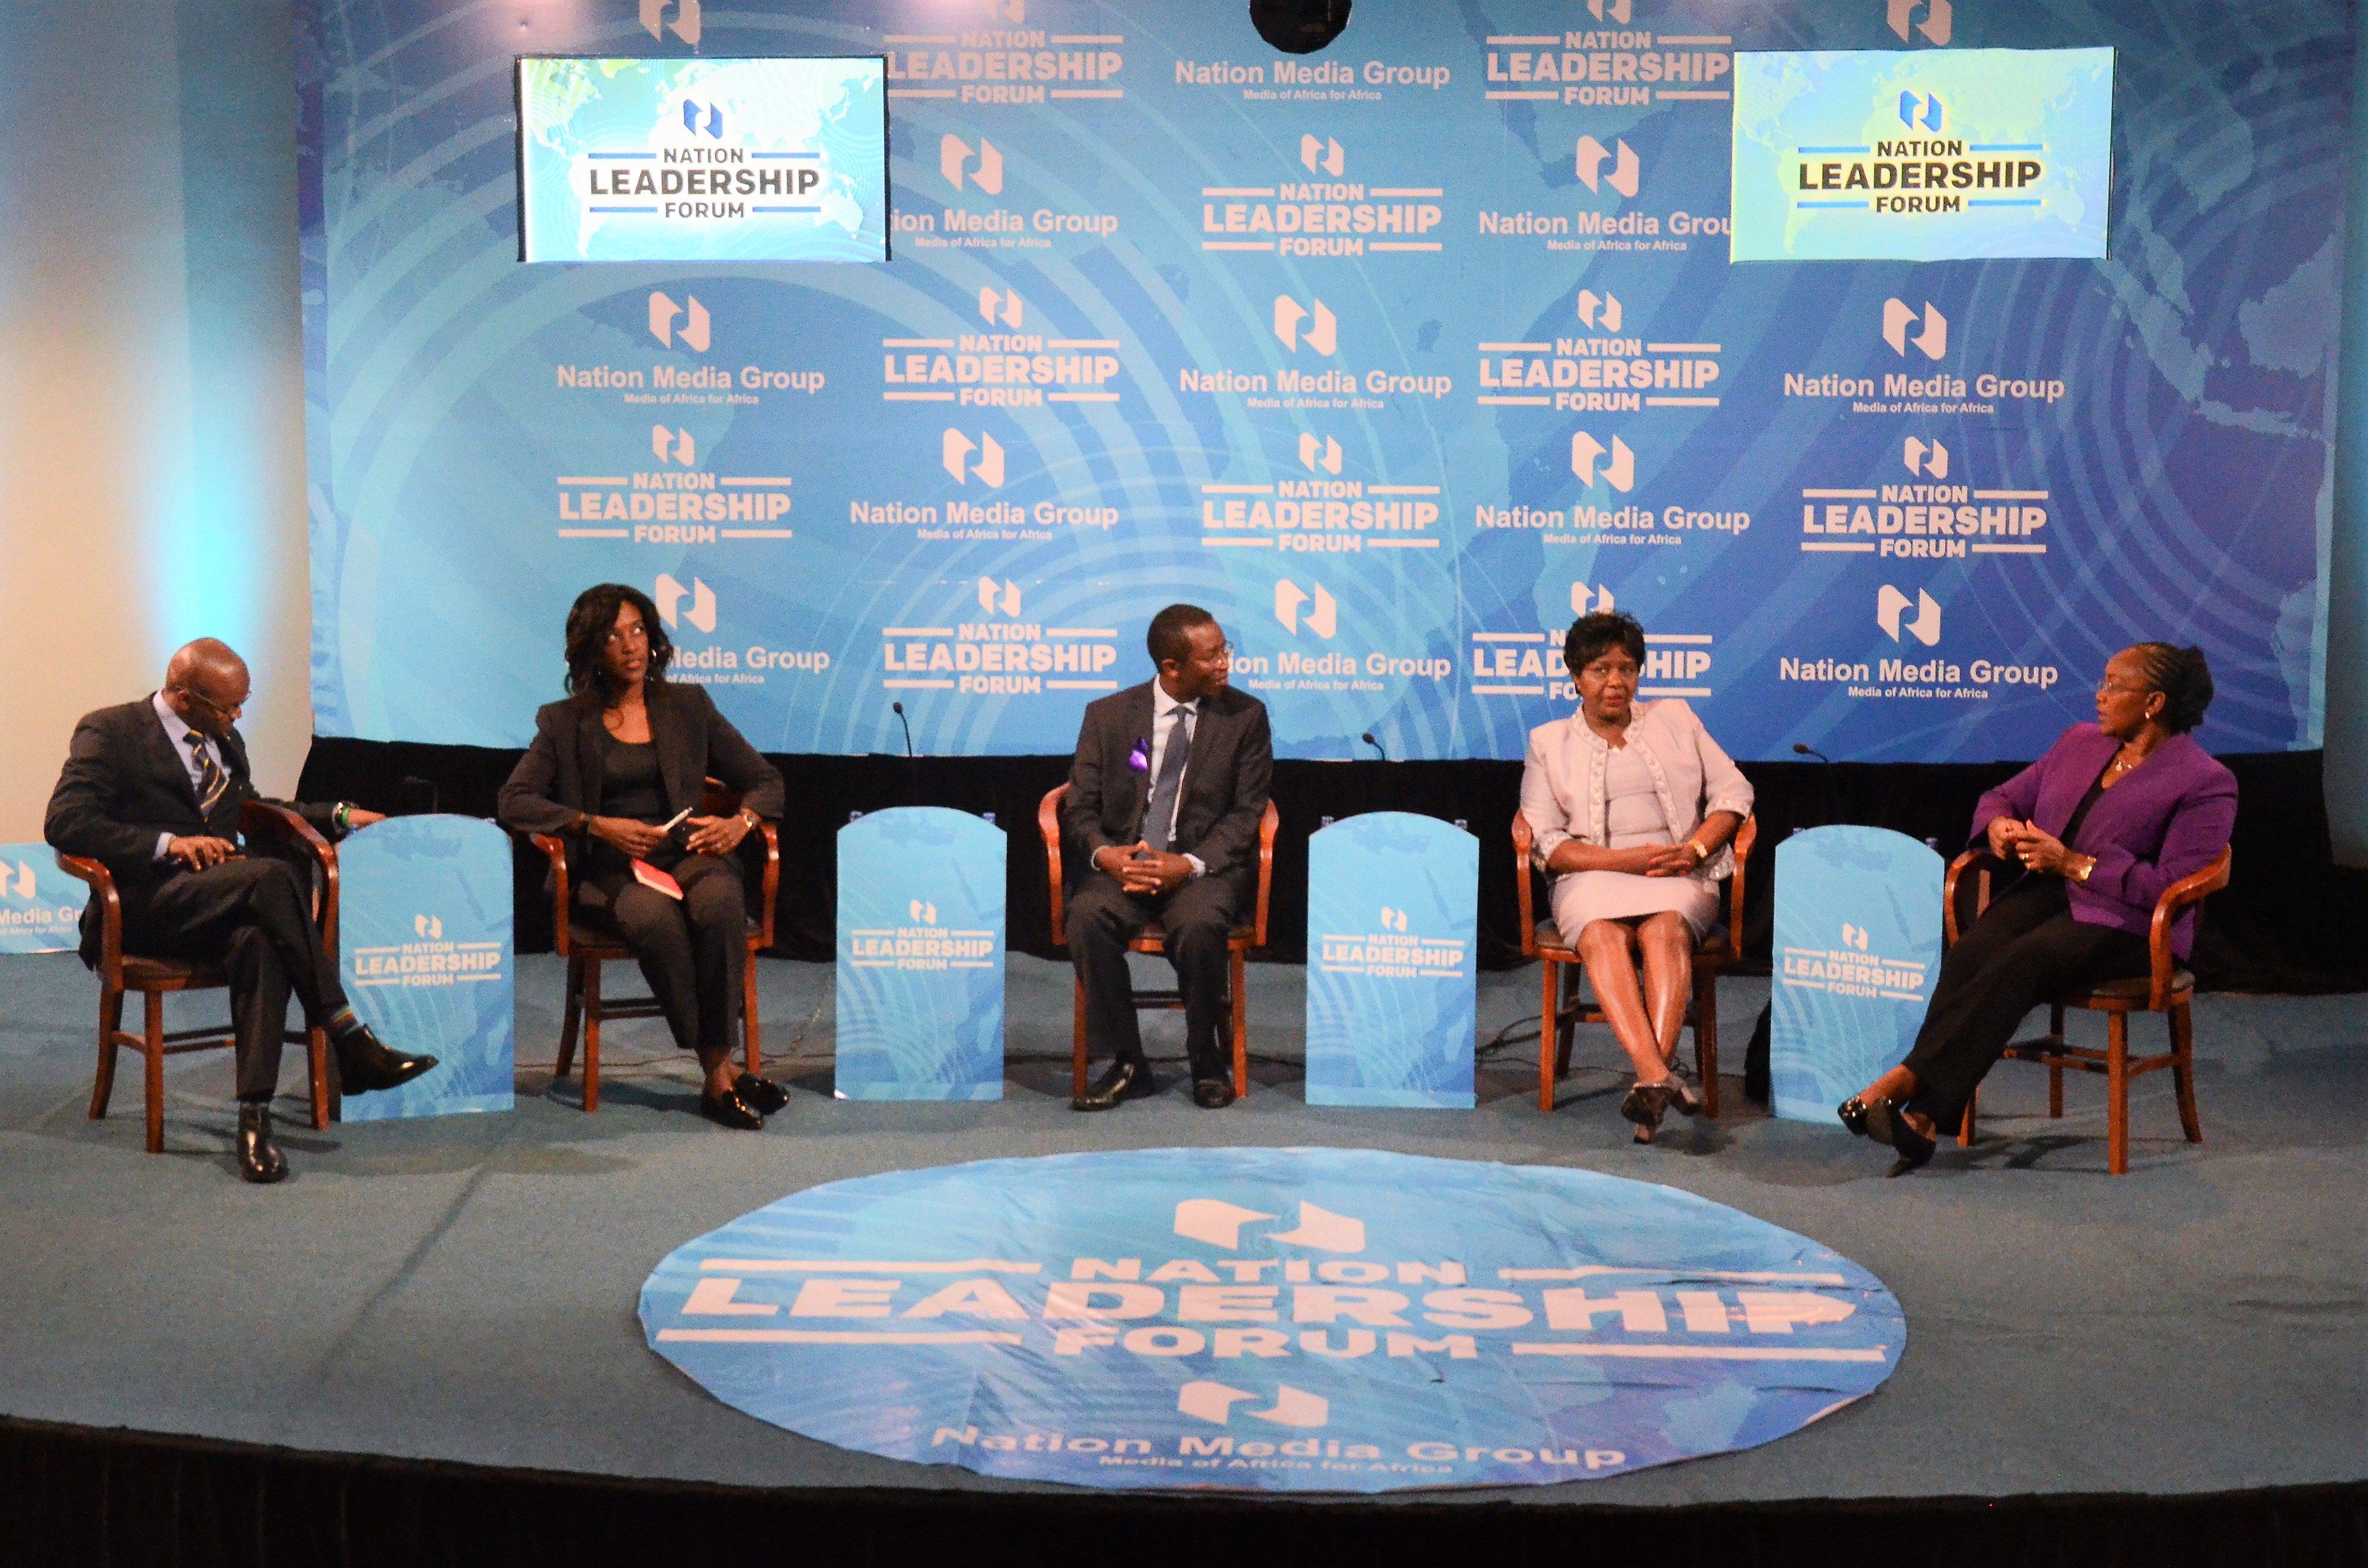 Nation leadership forum: The gender dilemma